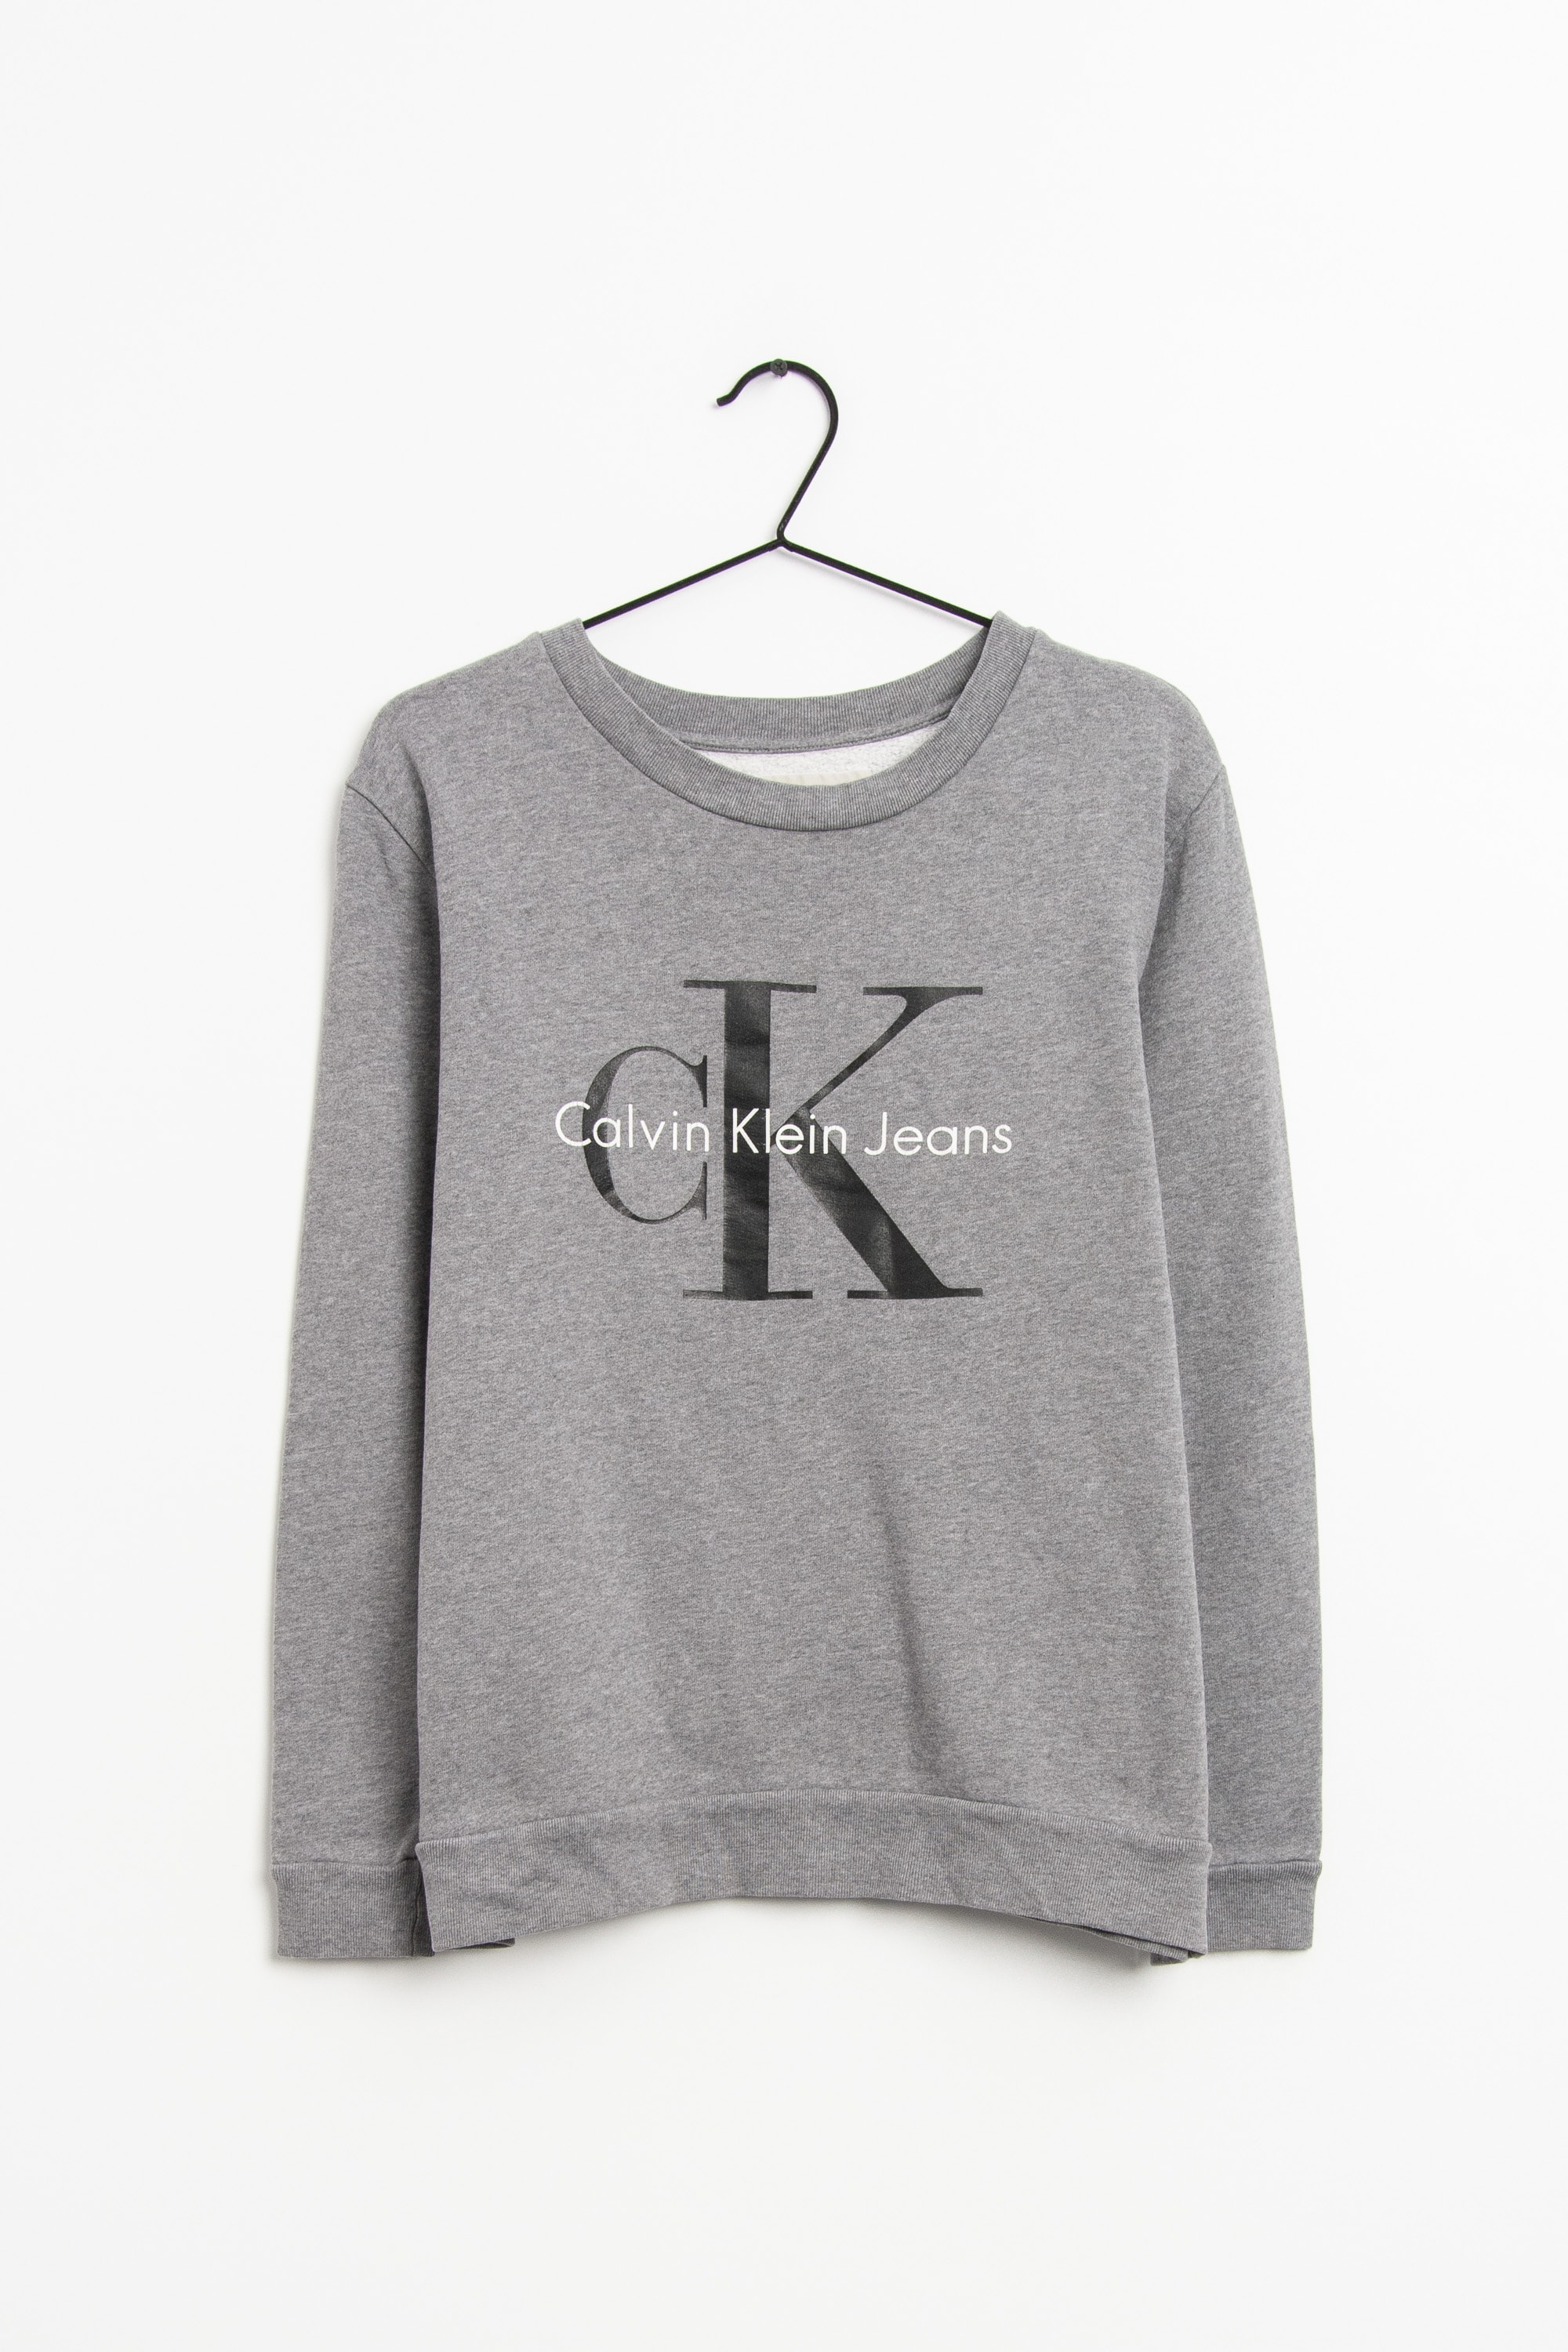 Calvin Klein Jeans Sweat / Fleece Grau Gr.S